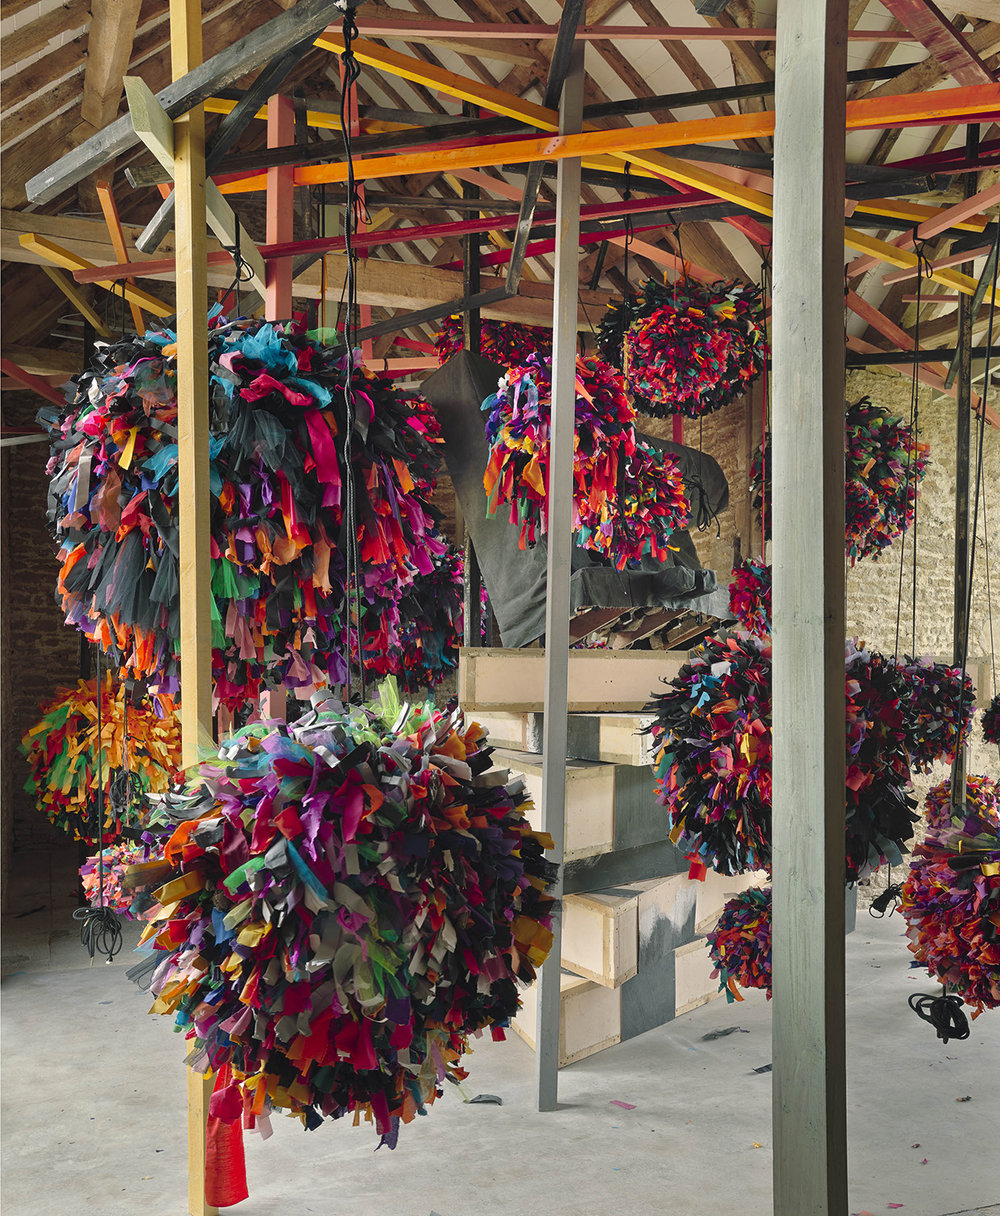 untitled: GIG (detail), 2014, Phyllida Barlow, fabric, paper, cord, timber, paint. Installation view, GIG, Hauser & Wirth Somerset, 2014. Photo: Alex Delfanne © Phyllida Barlow. Courtesy the artist and Hauser & Wirth